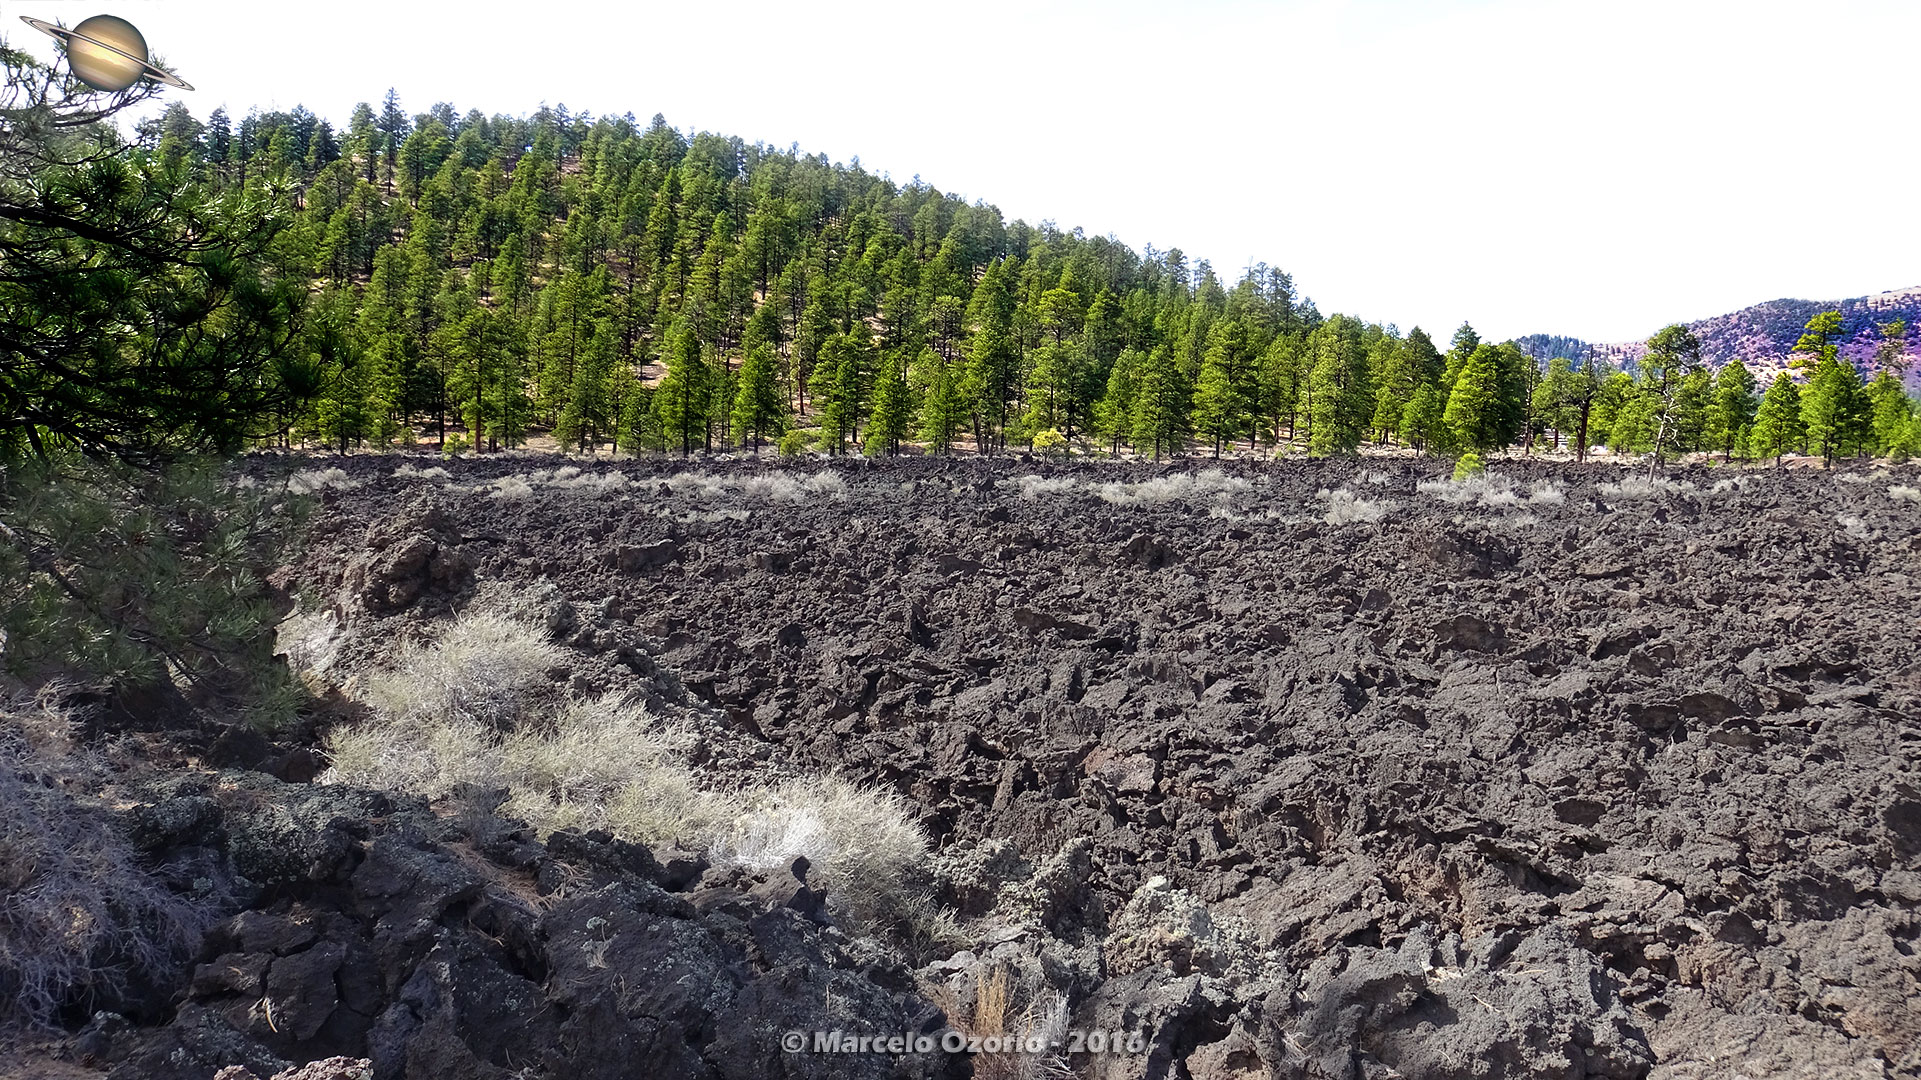 Sunset Crater Volcano Arizona 27 - Frozen Lava Fields at Sunset Crater Volcano - Arizona